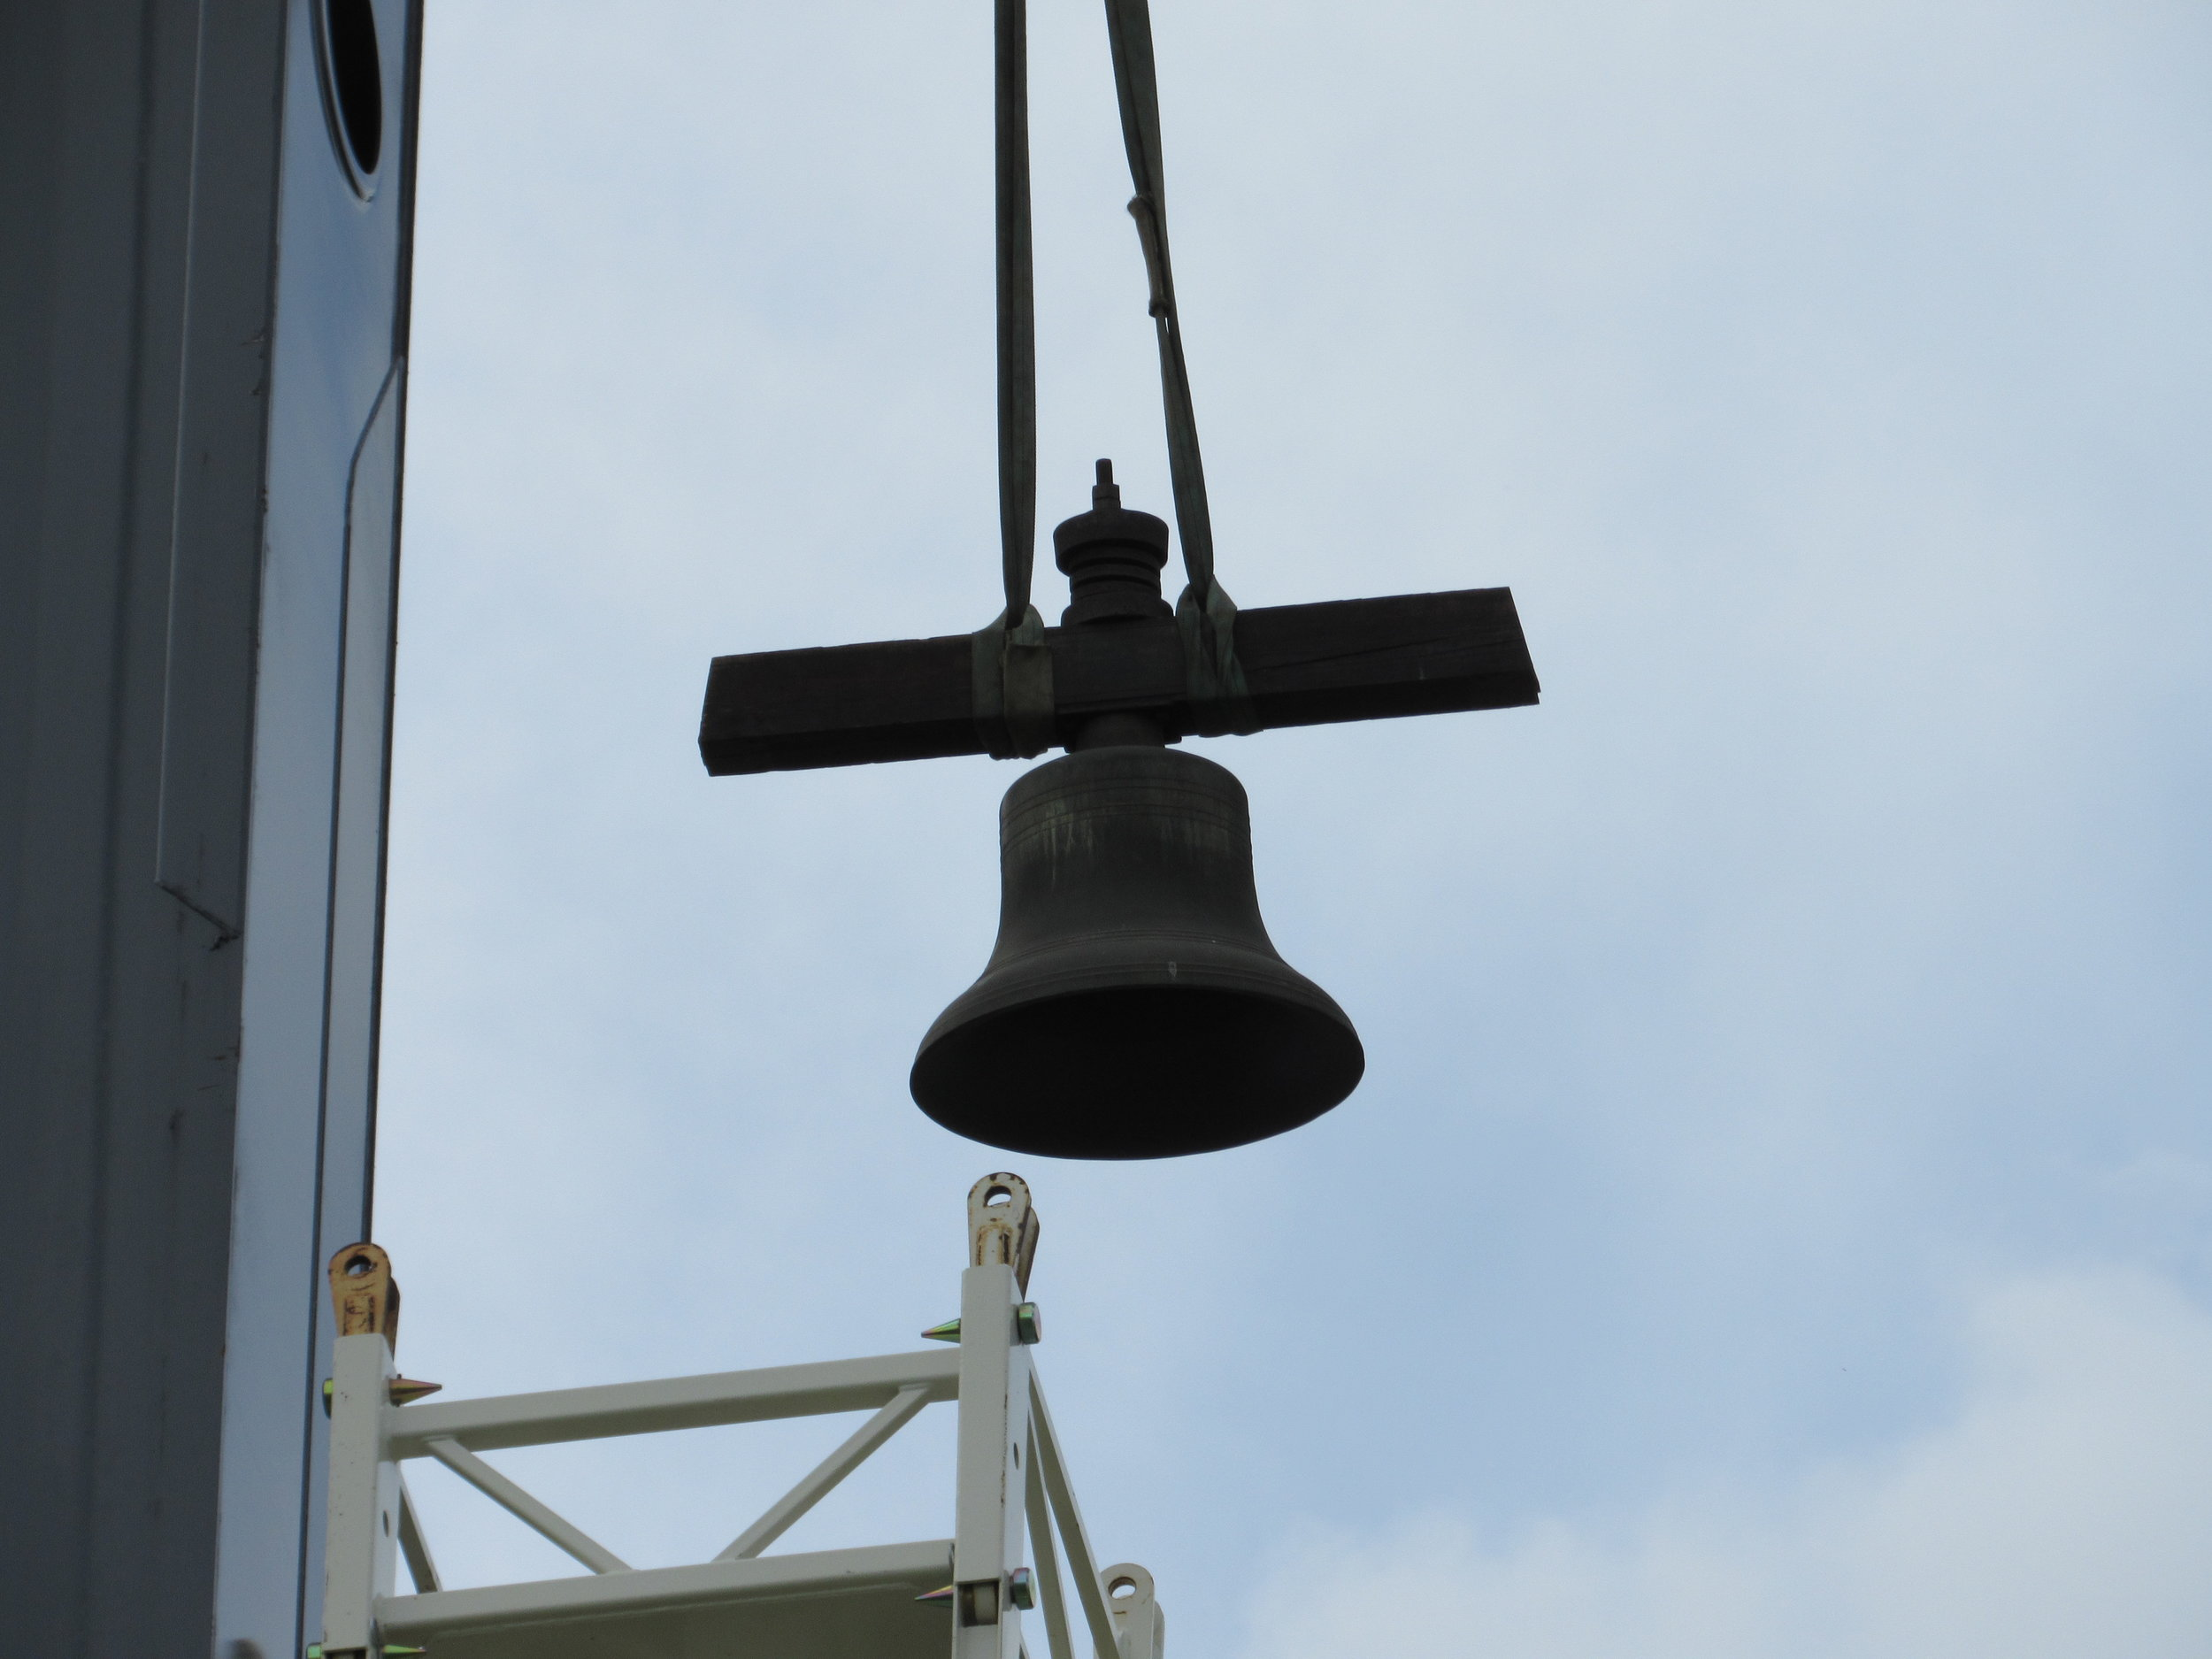 Church-Bell-Restoration-Begins.jpg